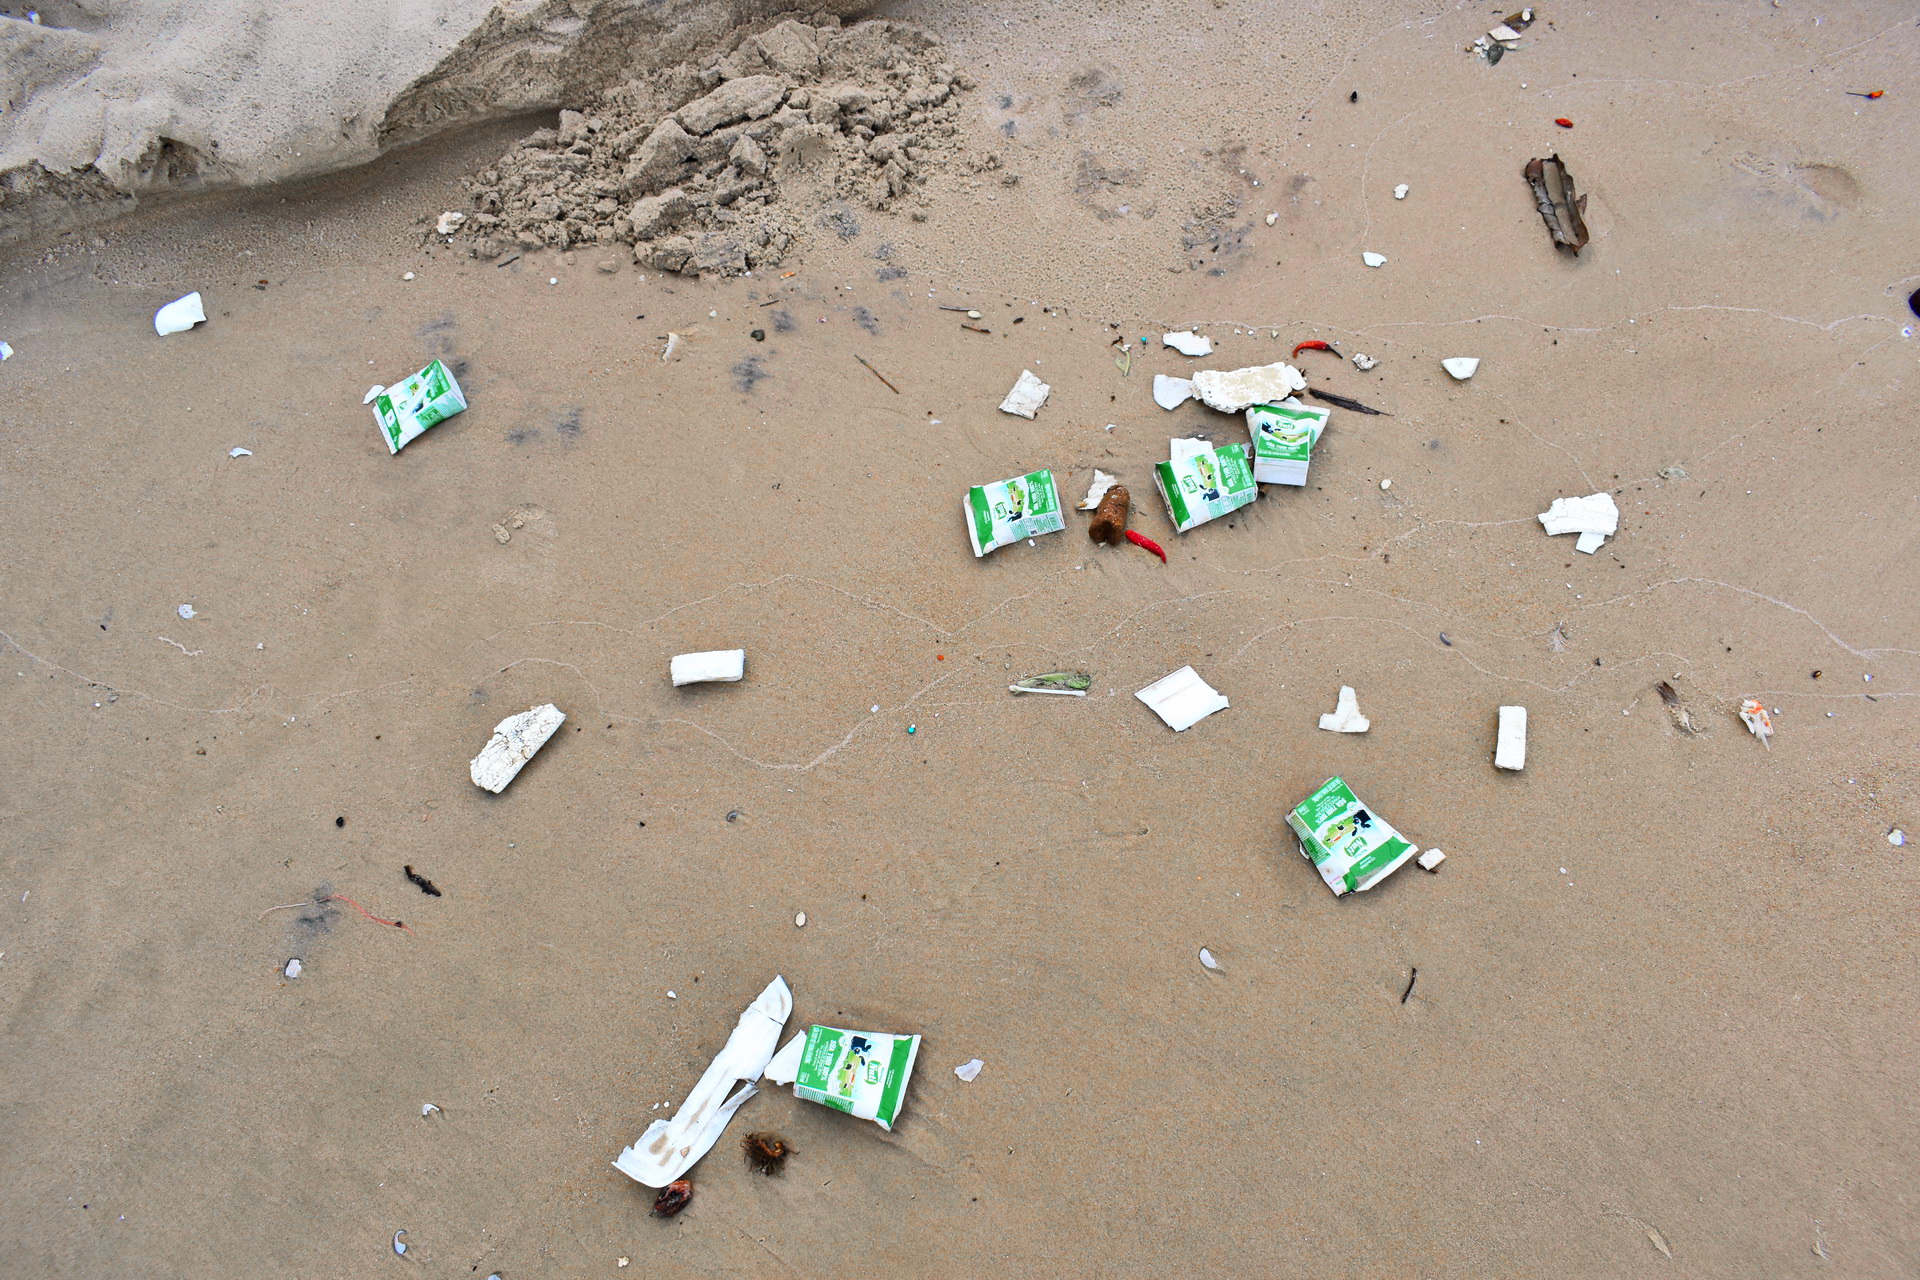 The Ke Ga Beach in Binh Thuan Province, Vietnam is littered with trash from human activities. Photo: Tuan Son / Tuoi Tre News